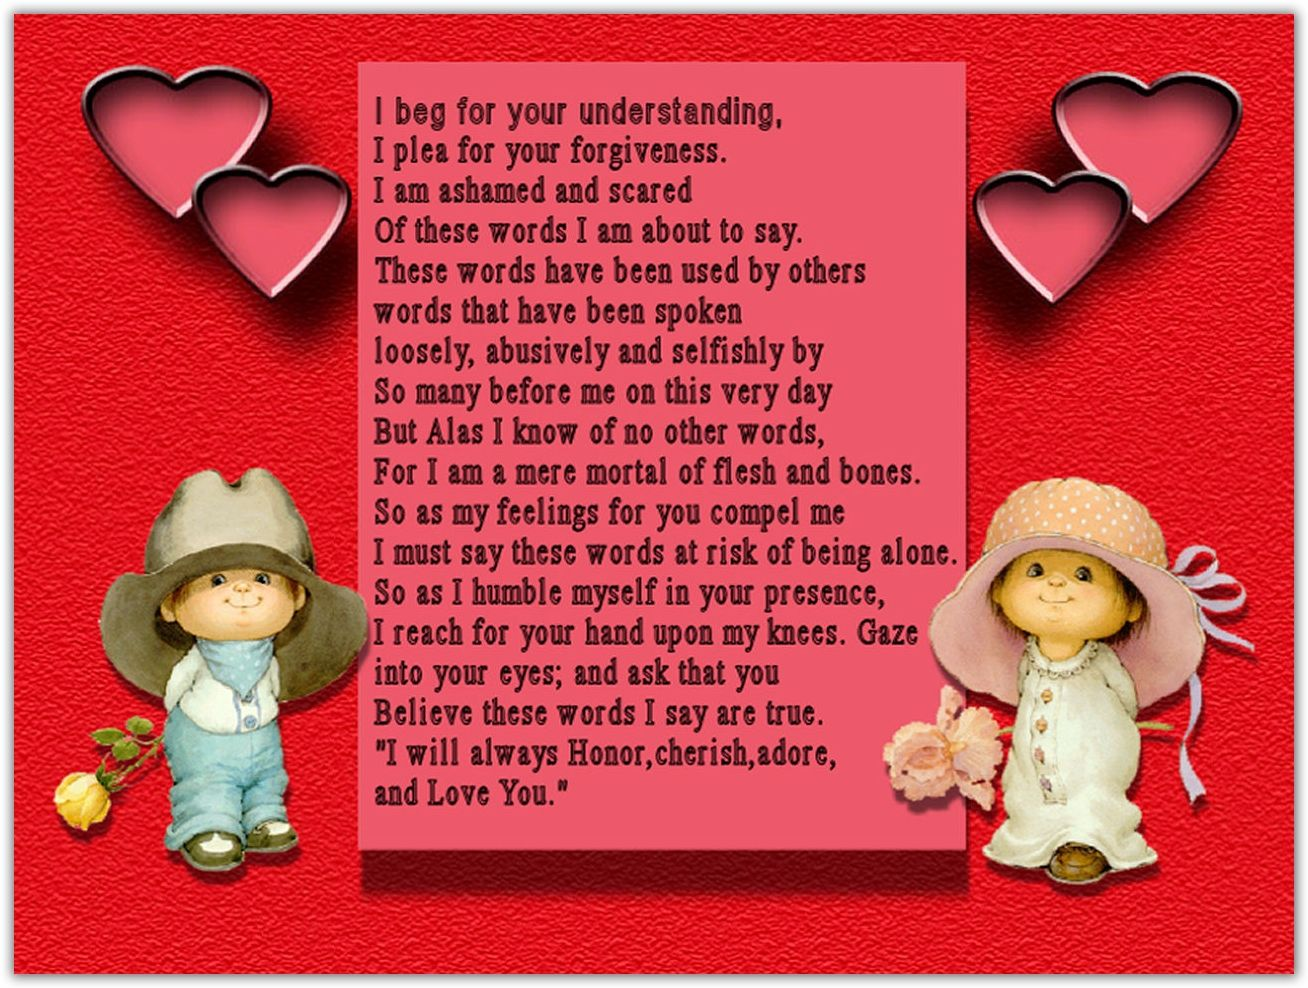 How to wish happy valentines day my friend valentines day wishes love quotes for funny anti valentines day quotes valentines day wishes cards hd wallpapers of cards kristyandbryce Images